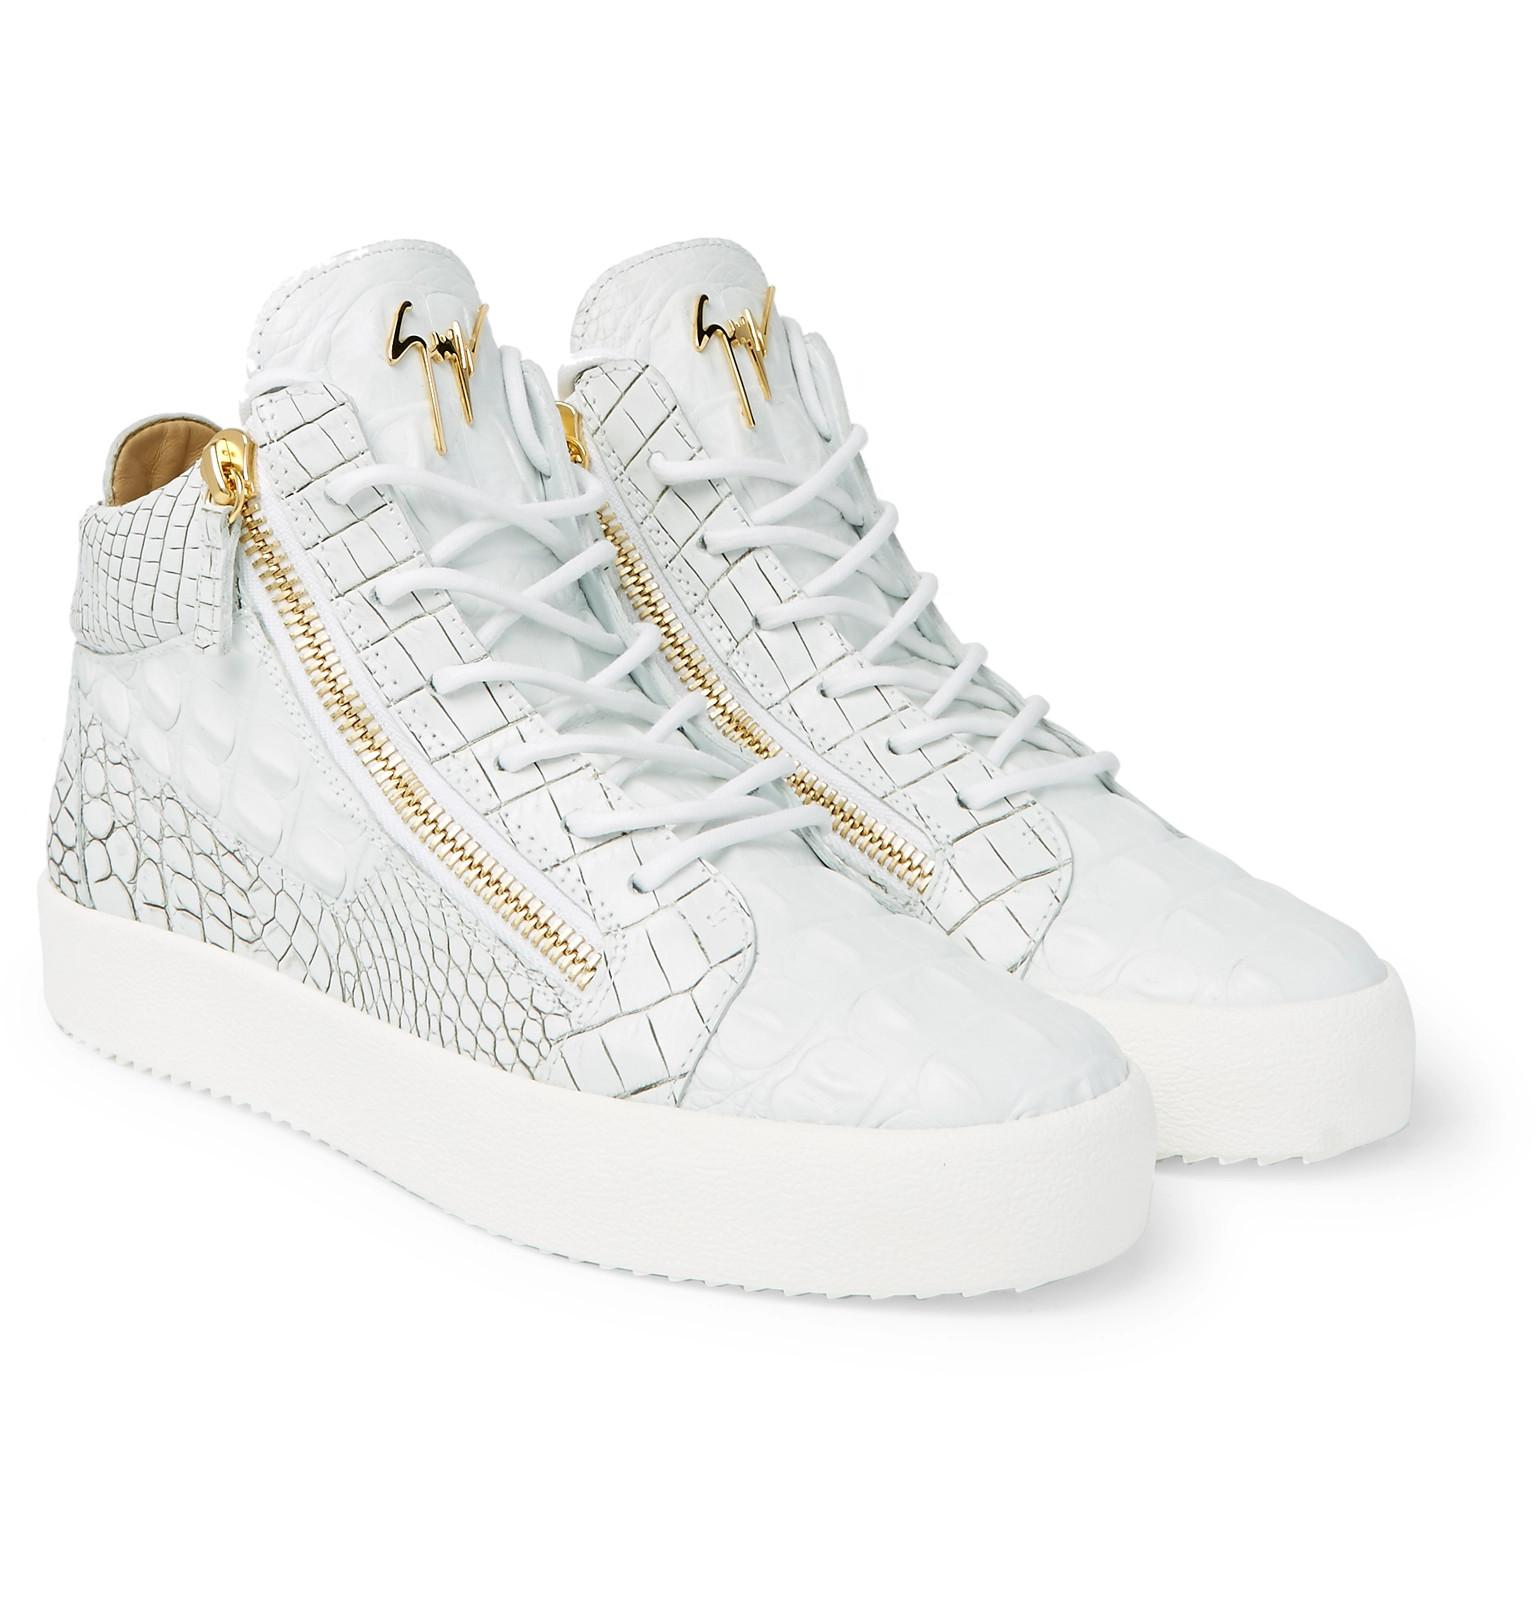 35a3c863d7ec5 Giuseppe Zanotti Logoball Croc-effect Leather High-top Sneakers in ...